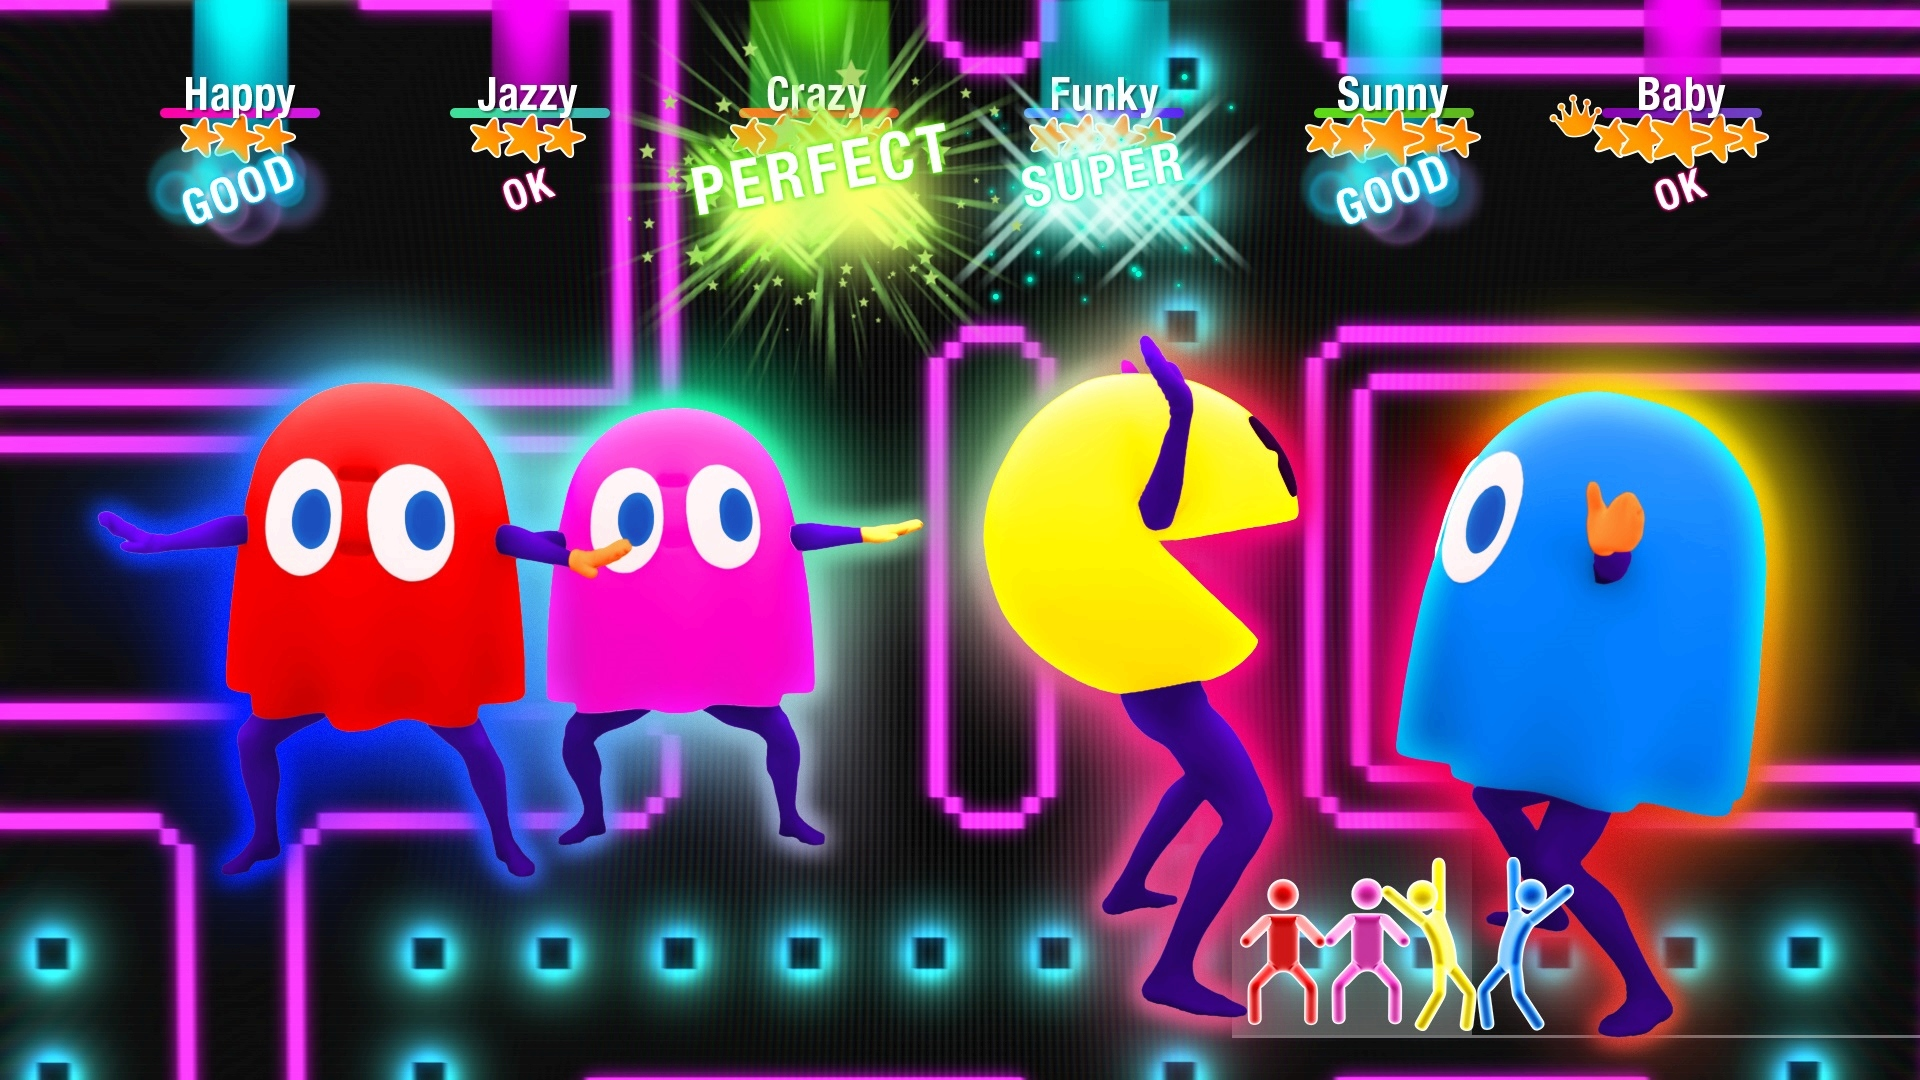 Just Dance 2019 Screenshot 02